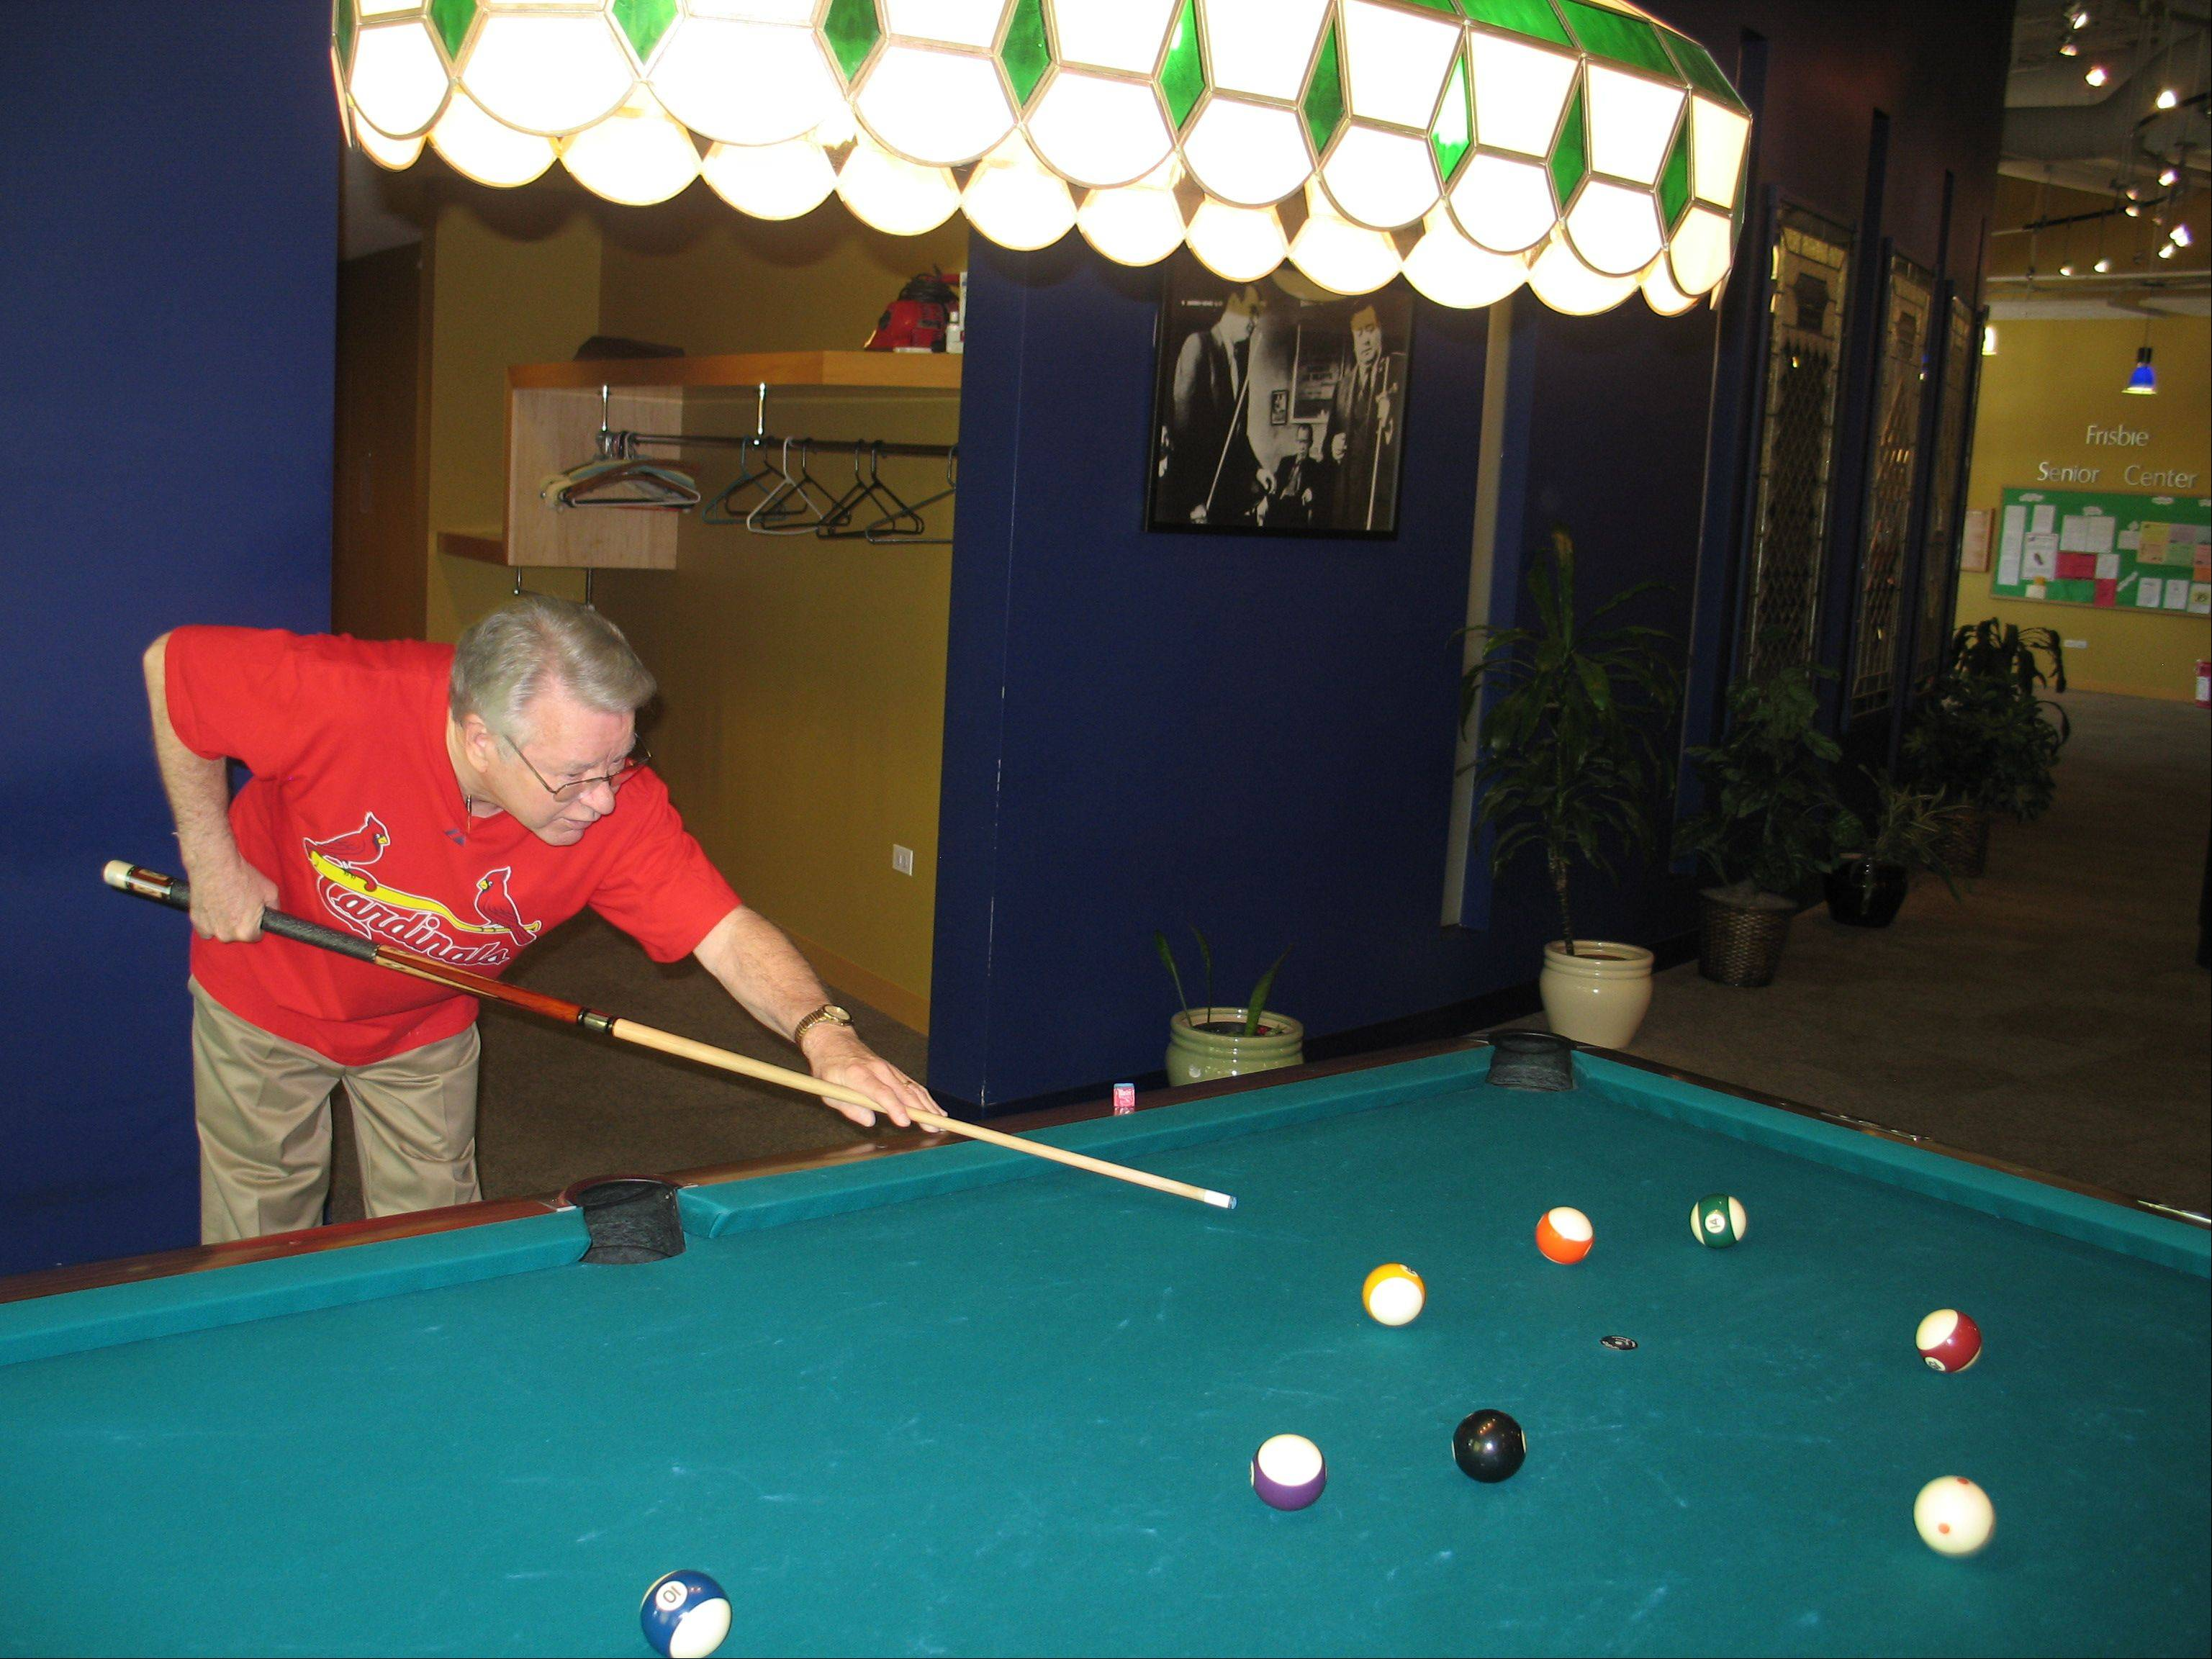 With bittersweet memories of childhood summers when work often trumped play, retired preacher Ron Houston now has the freedom to enjoy leisurely activities such as playing 9-ball or rooting for his St. Louis Cardinals.